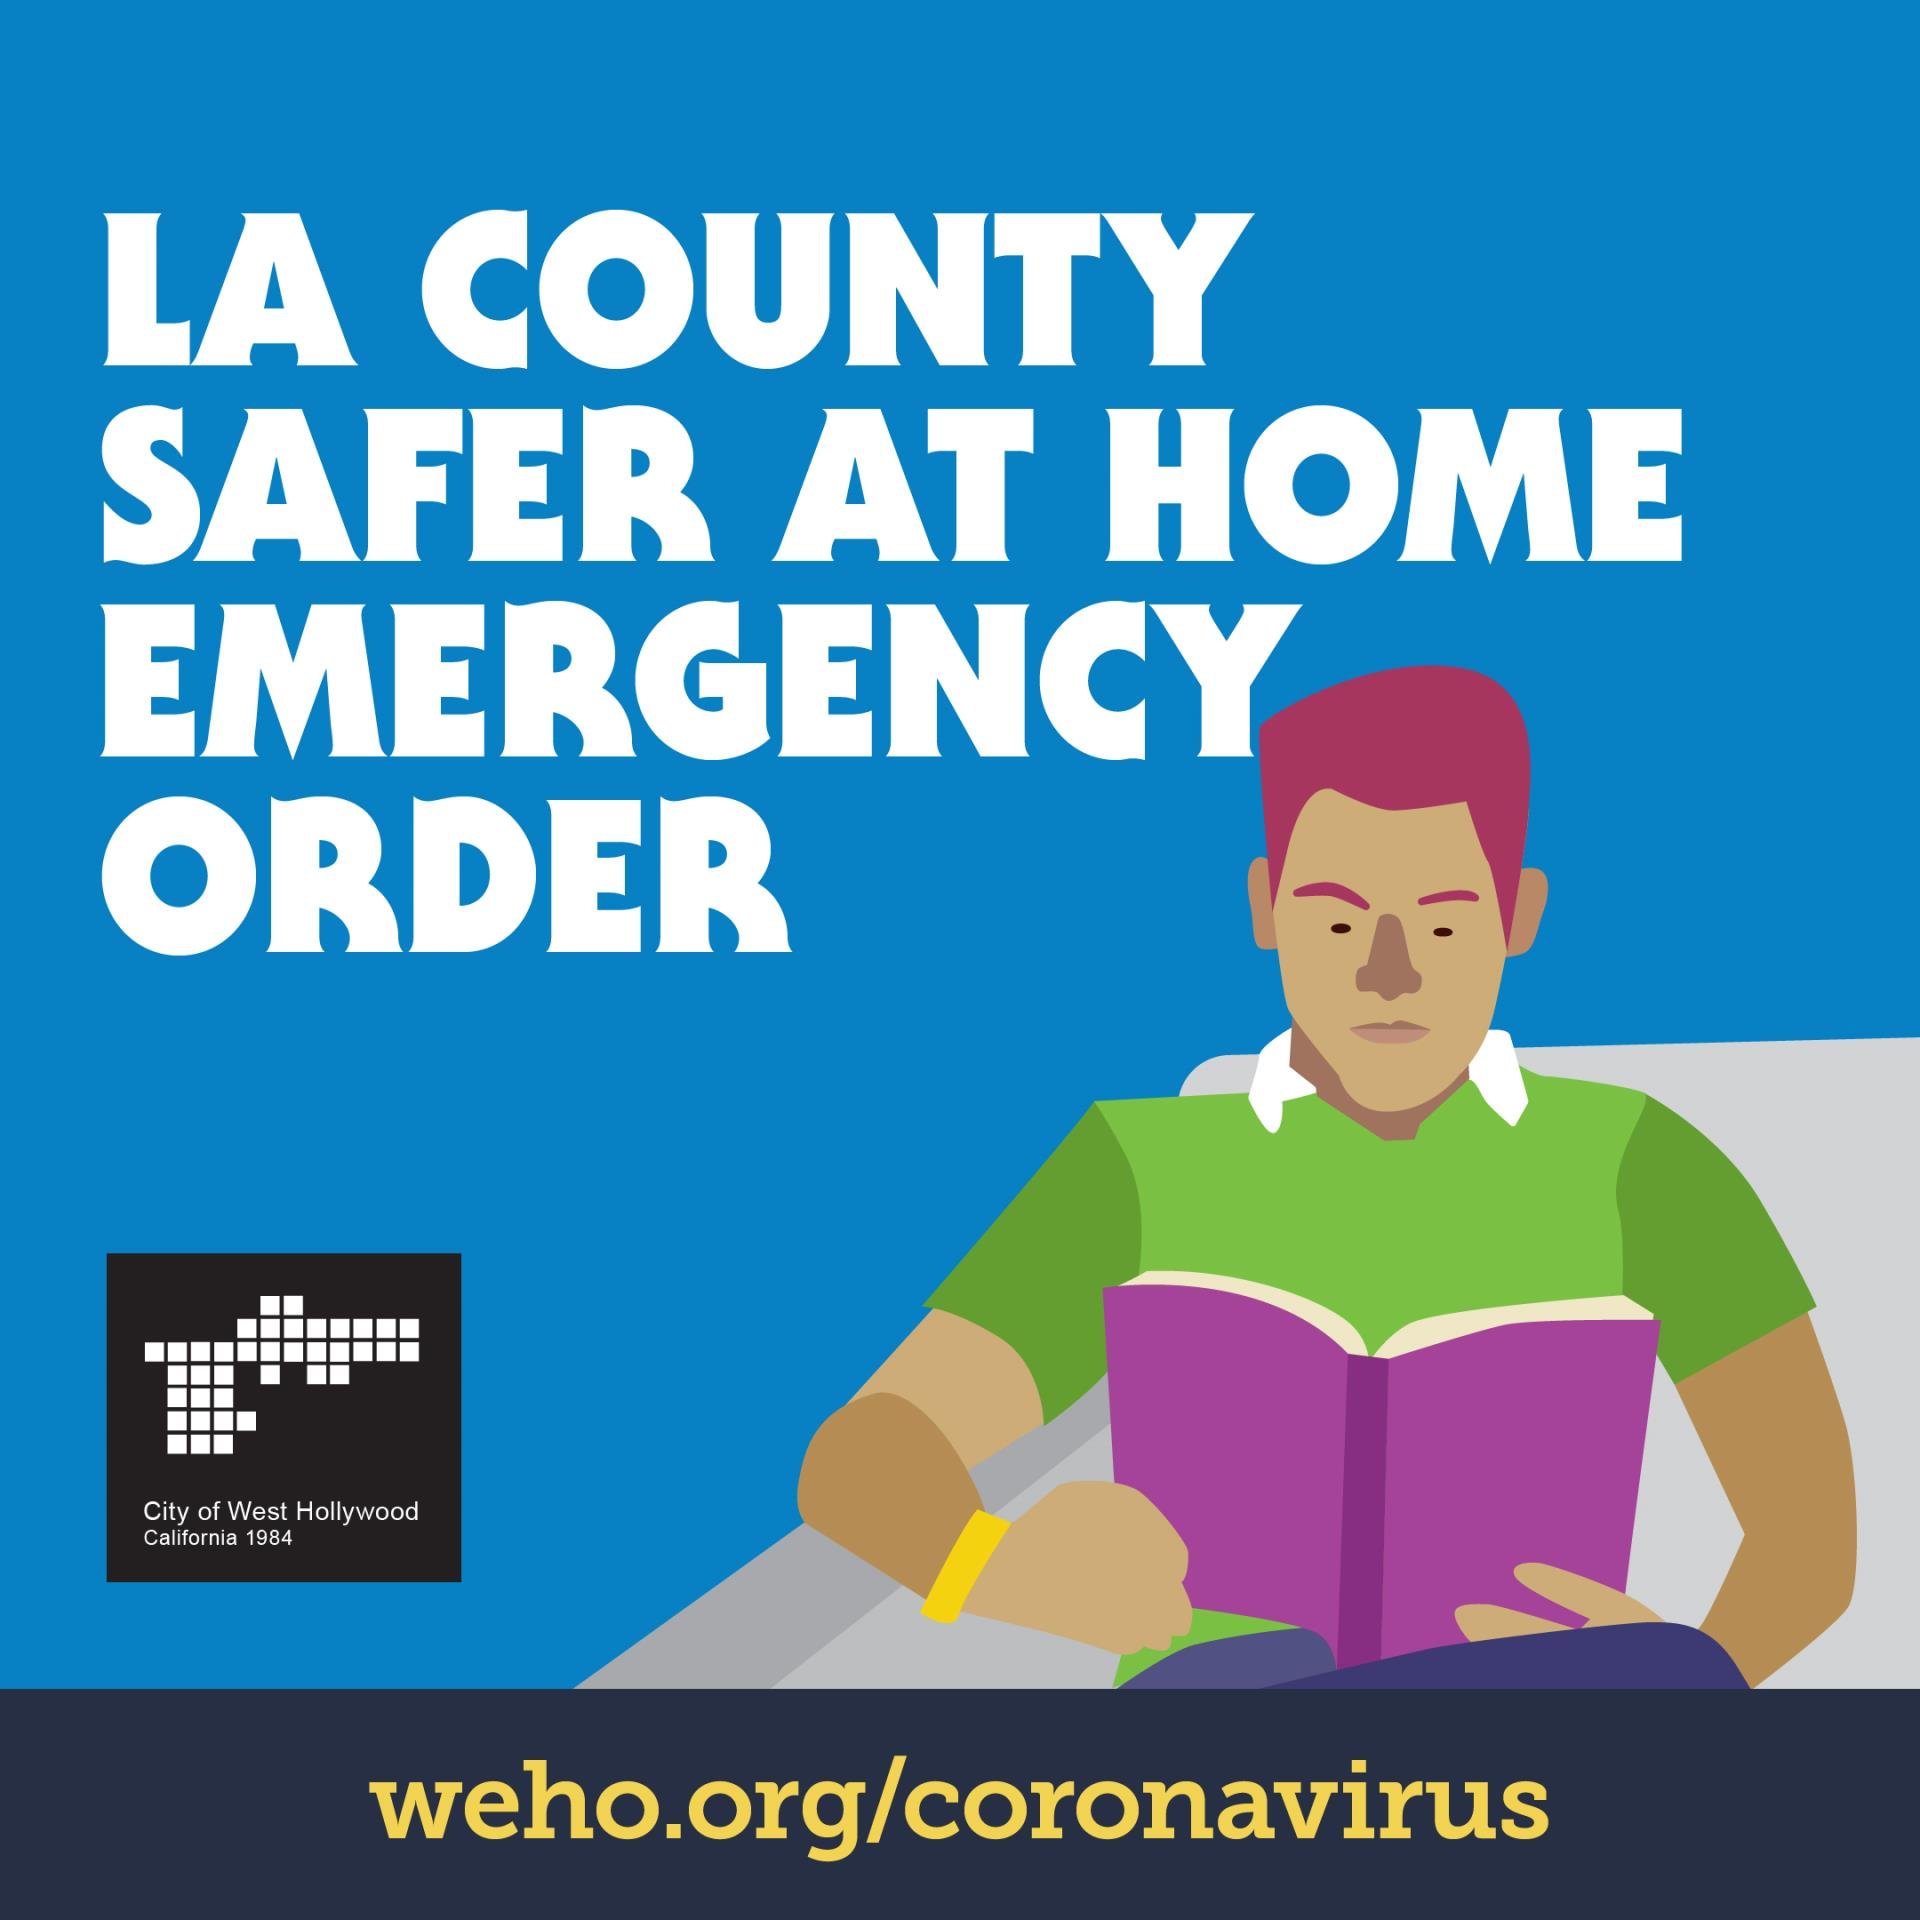 Los Angeles County Safer at Home Order